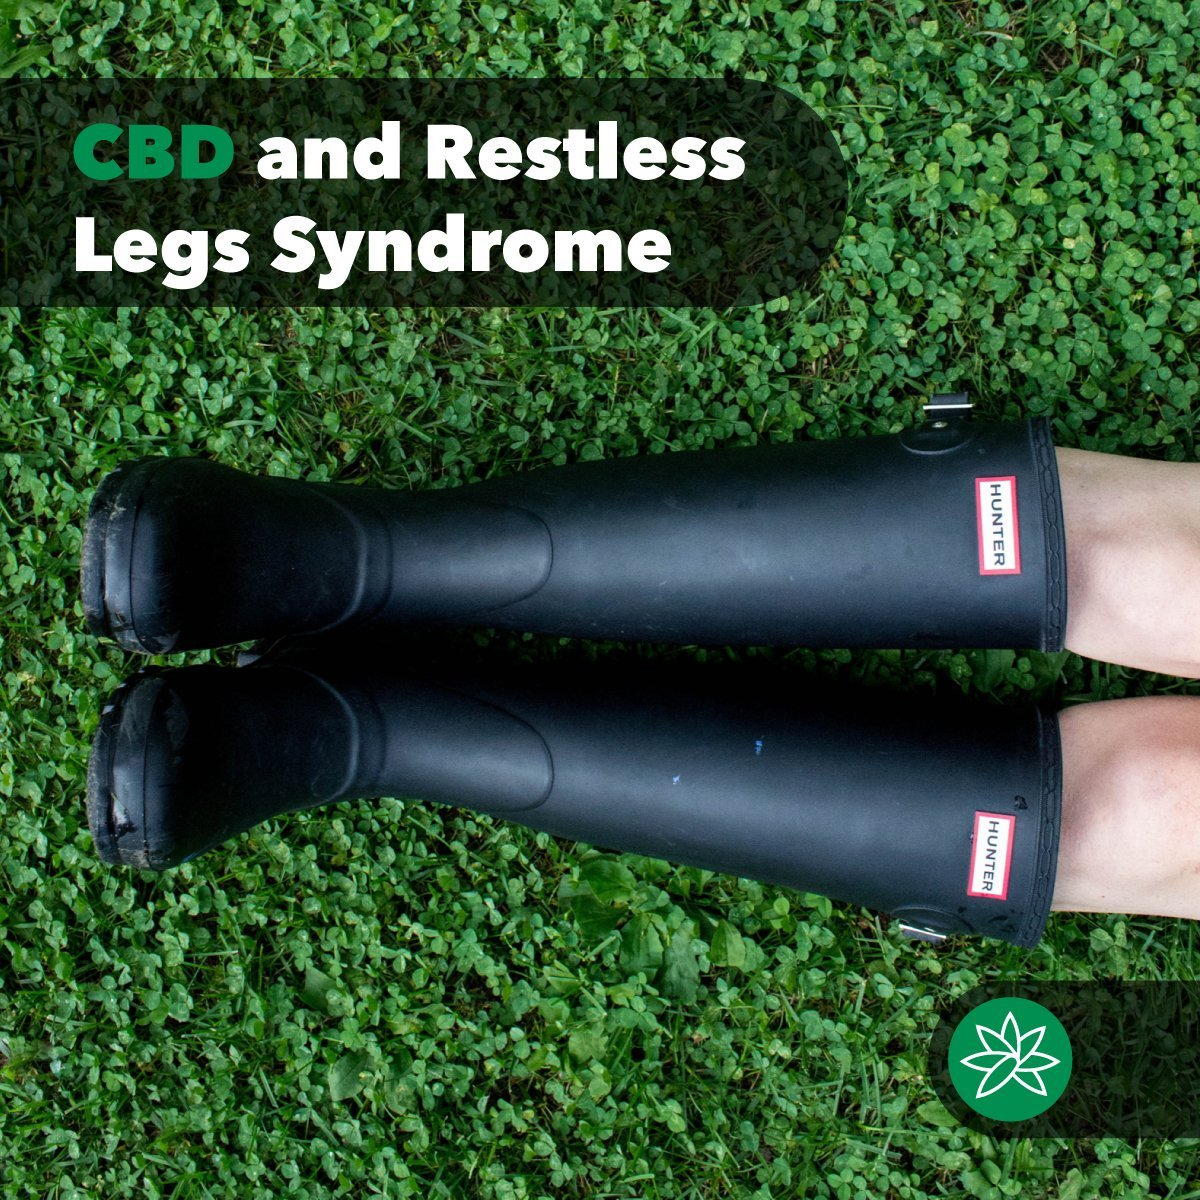 CBS and resyless legs syndrome